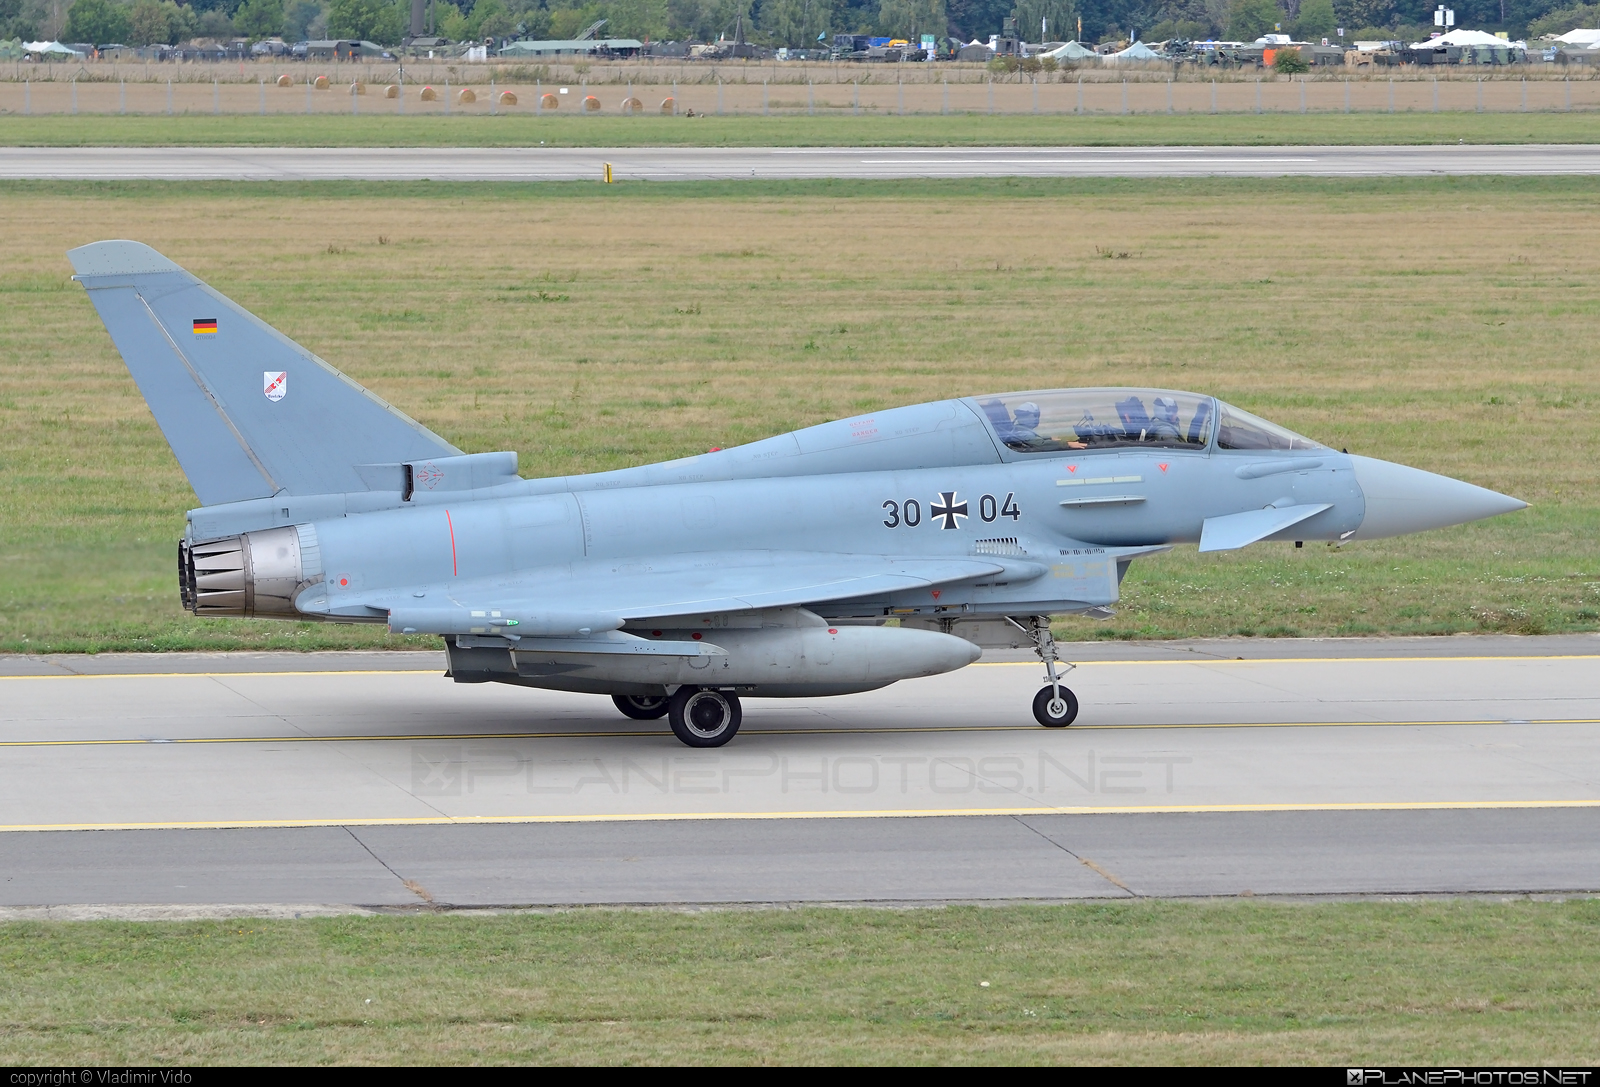 Eurofighter Typhoon T - 30+04 operated by Luftwaffe (German Air Force) #GermanAirForce #eurofighter #luftwaffe #typhoon